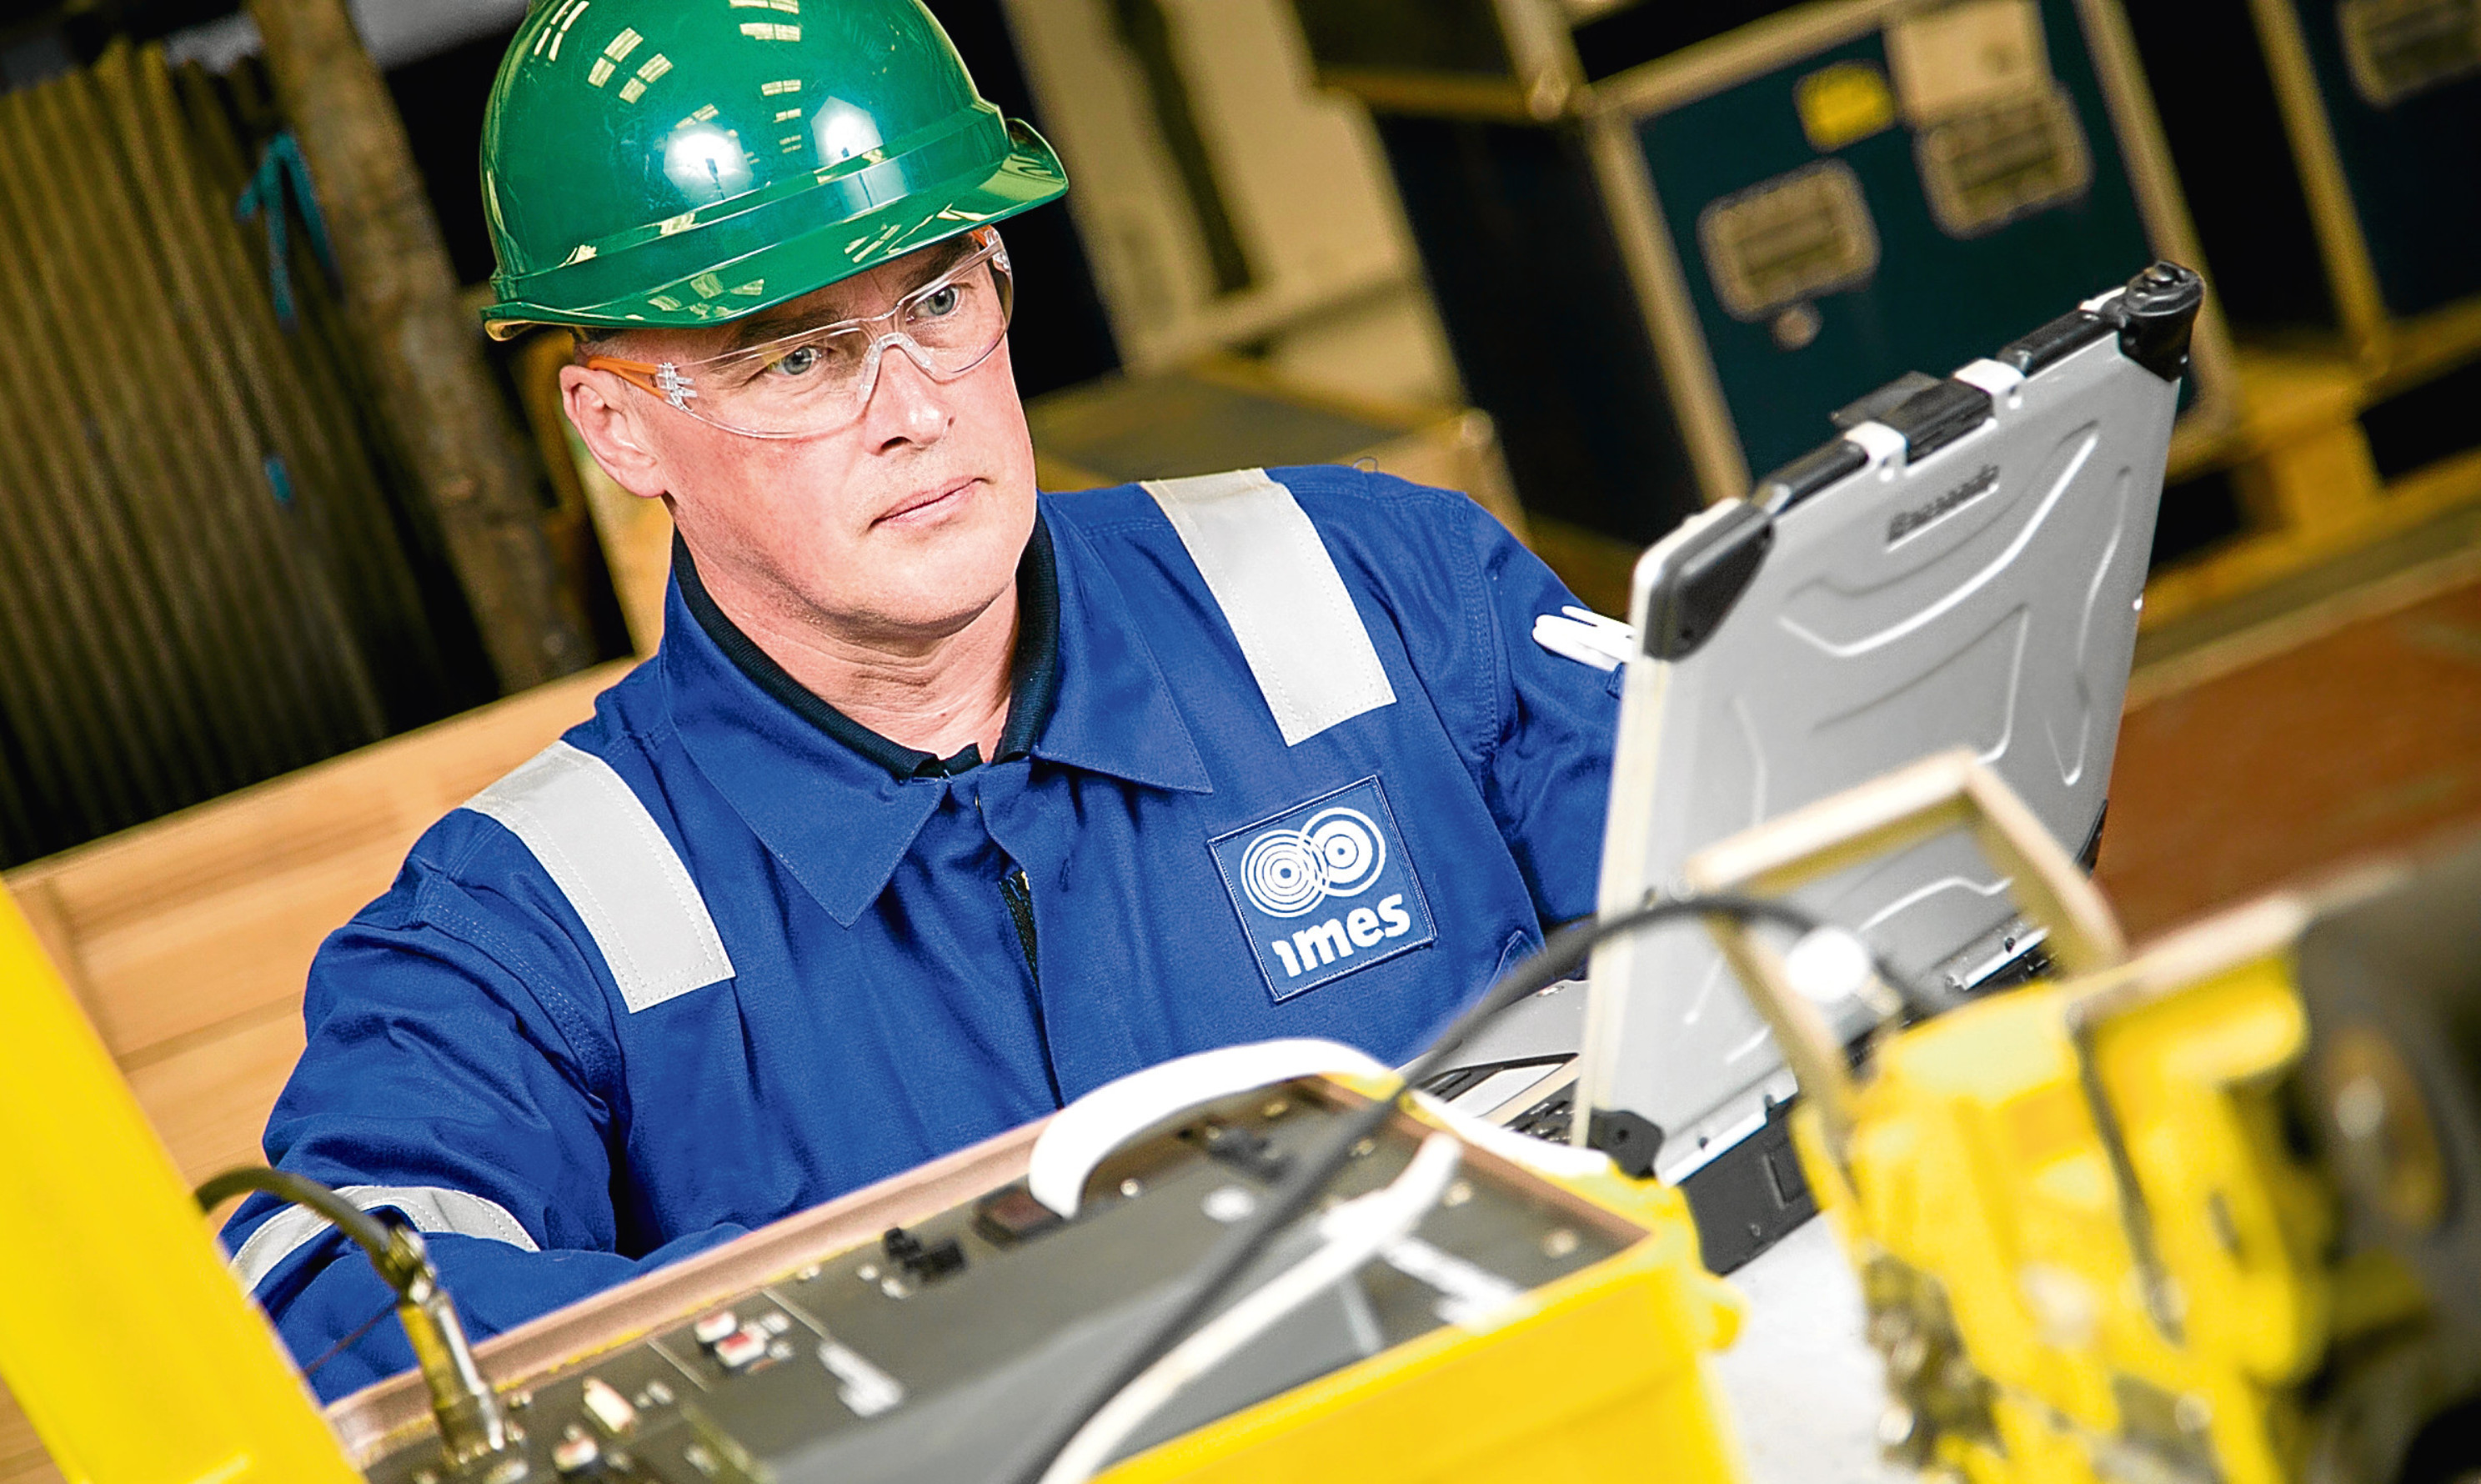 A technician carries out an equipment inspection at IMES Rosyth